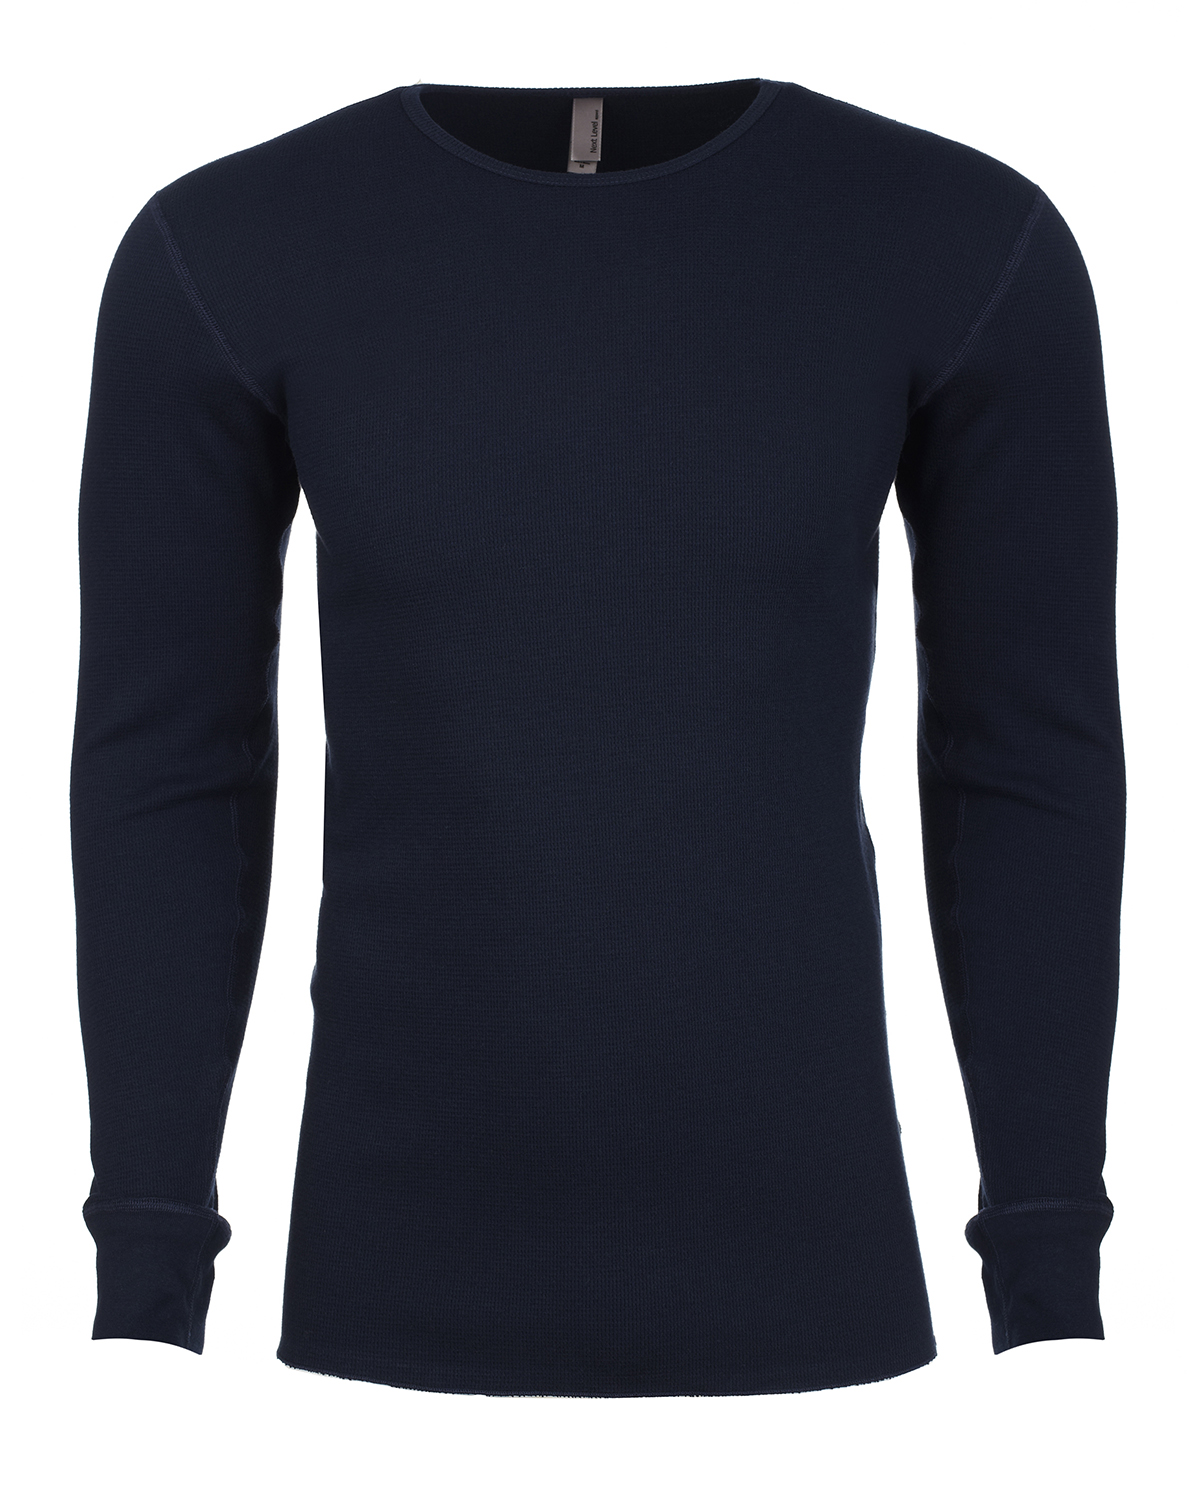 click to view MIDNIGHT NAVY